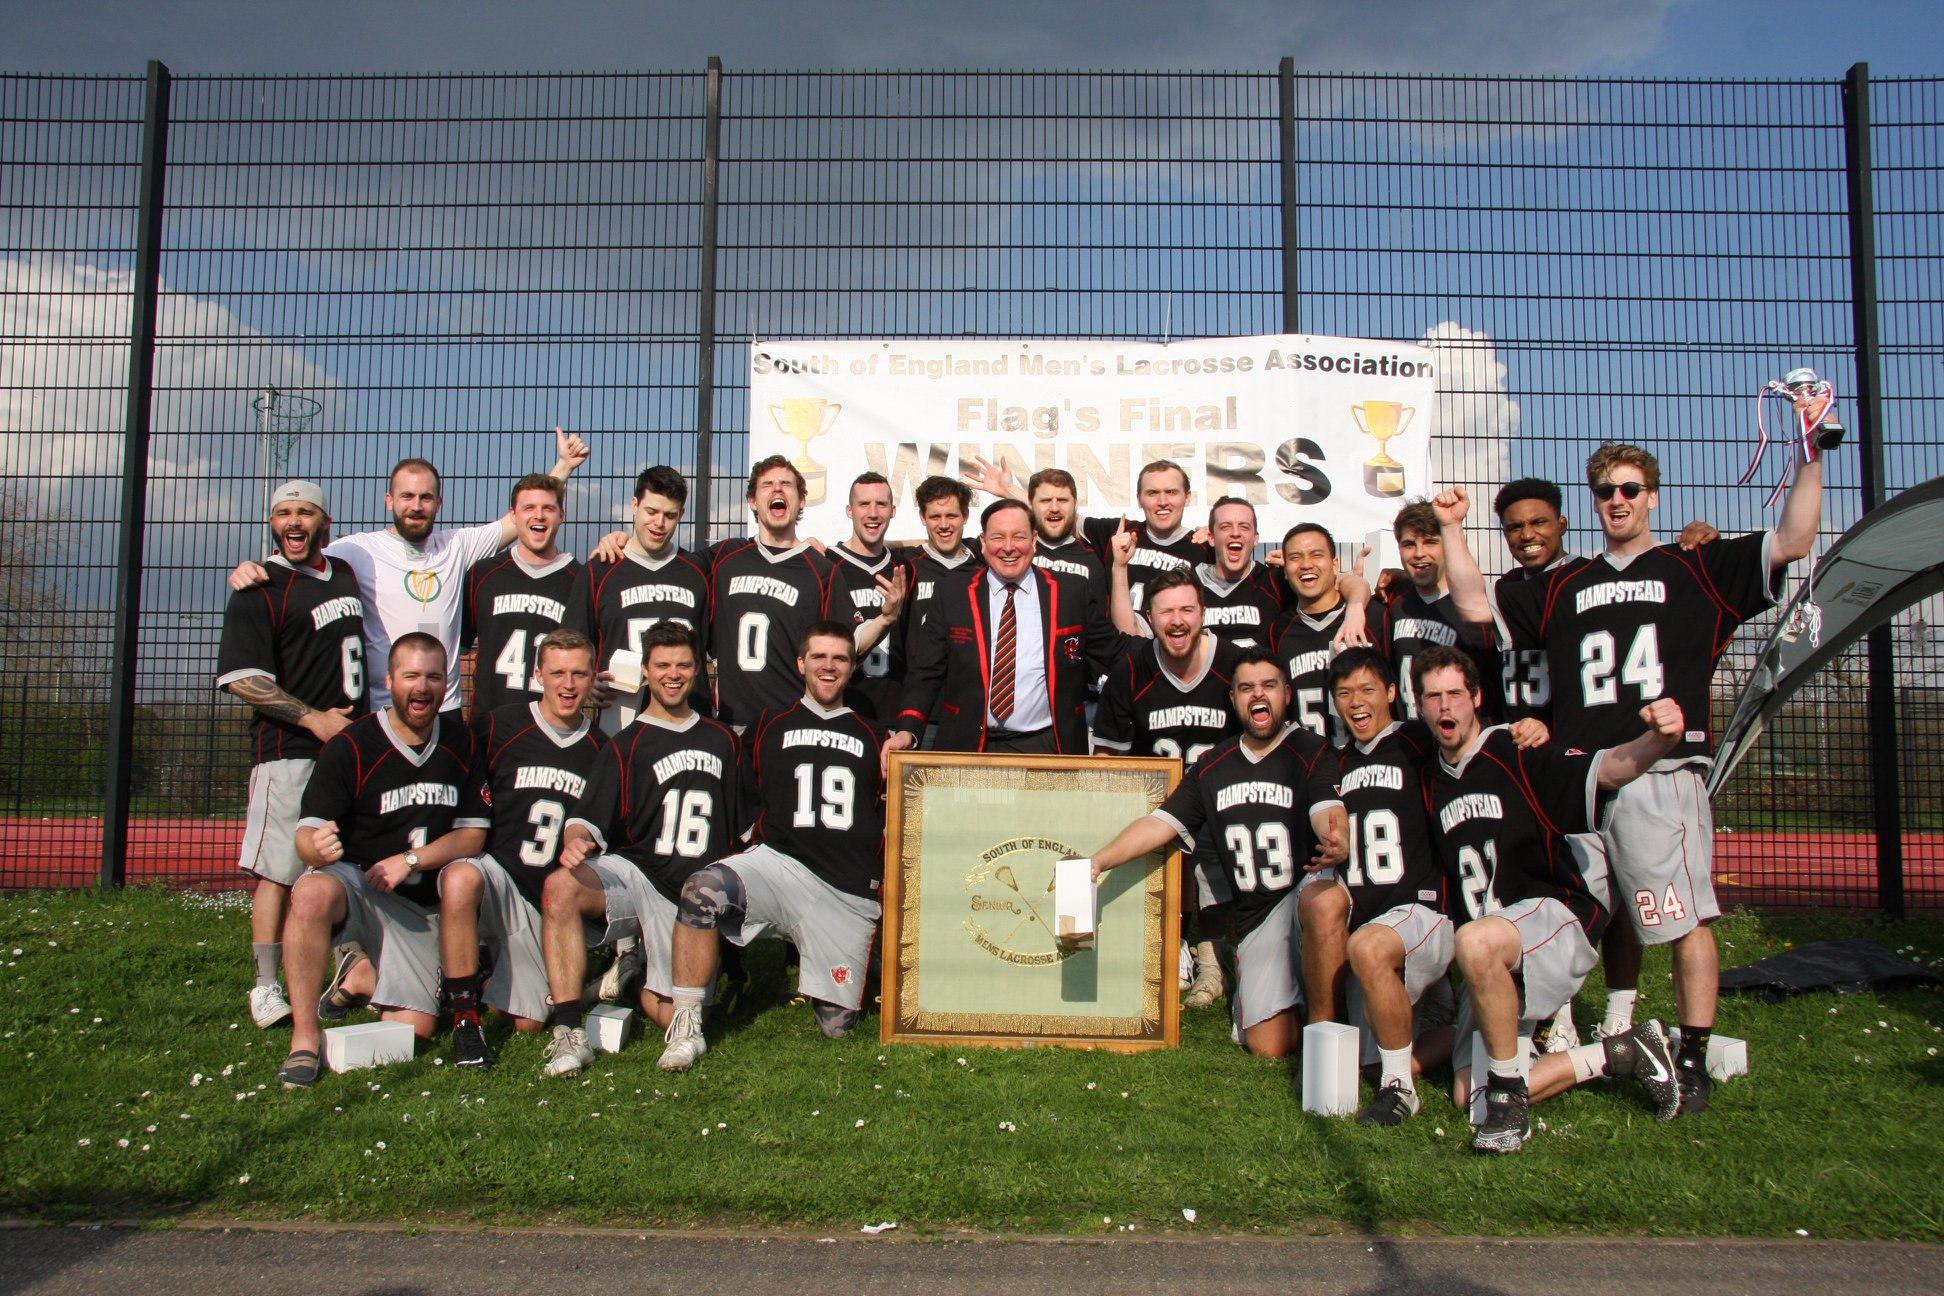 SEMLA League - Fixtures, results and tables from the South of England Men's Lacrosse Association